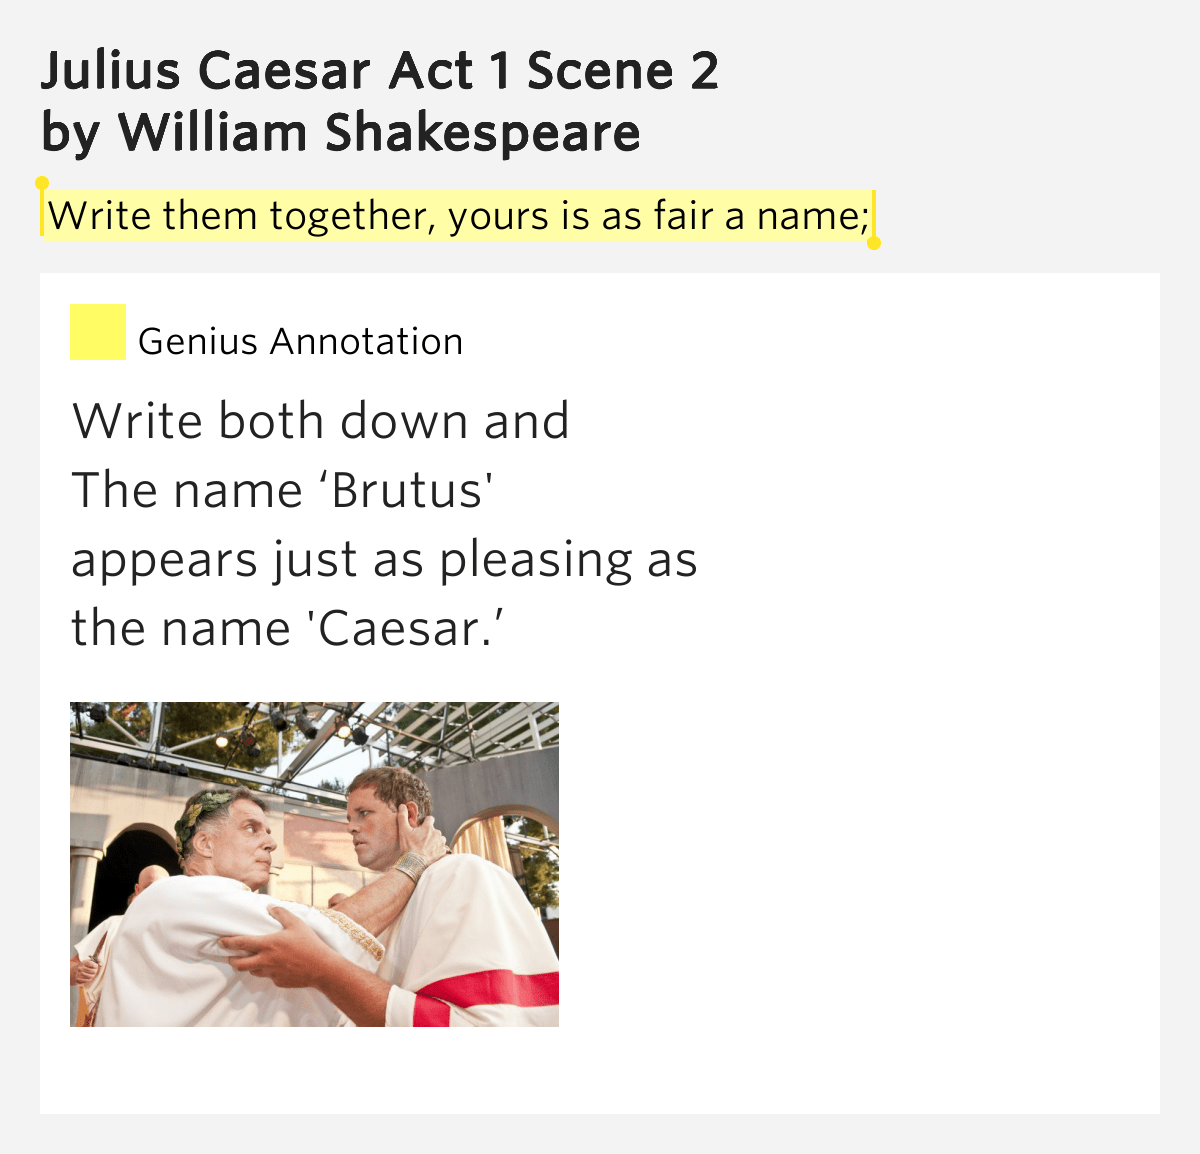 Write Them Together Yours Is As Fair A Name Julius Caesar Act 1 Scene 2 Meaning